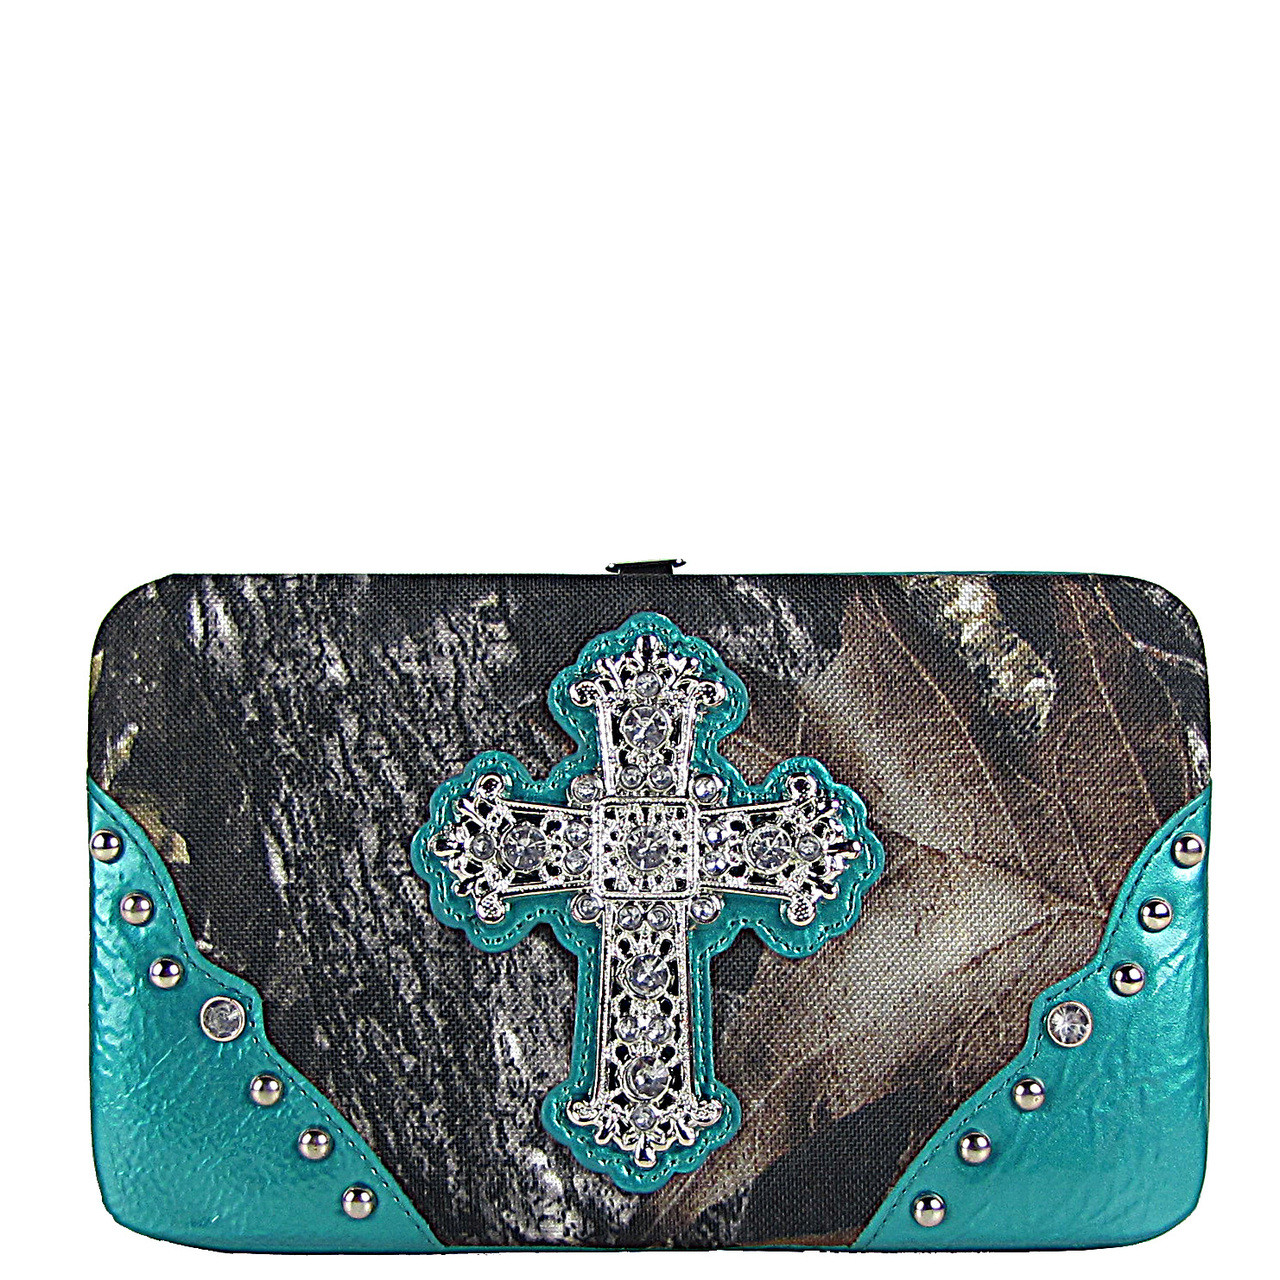 AQUA CROSS MOSSY CAMO LOOK FLAT THICK WALLET FW2-0421AQU